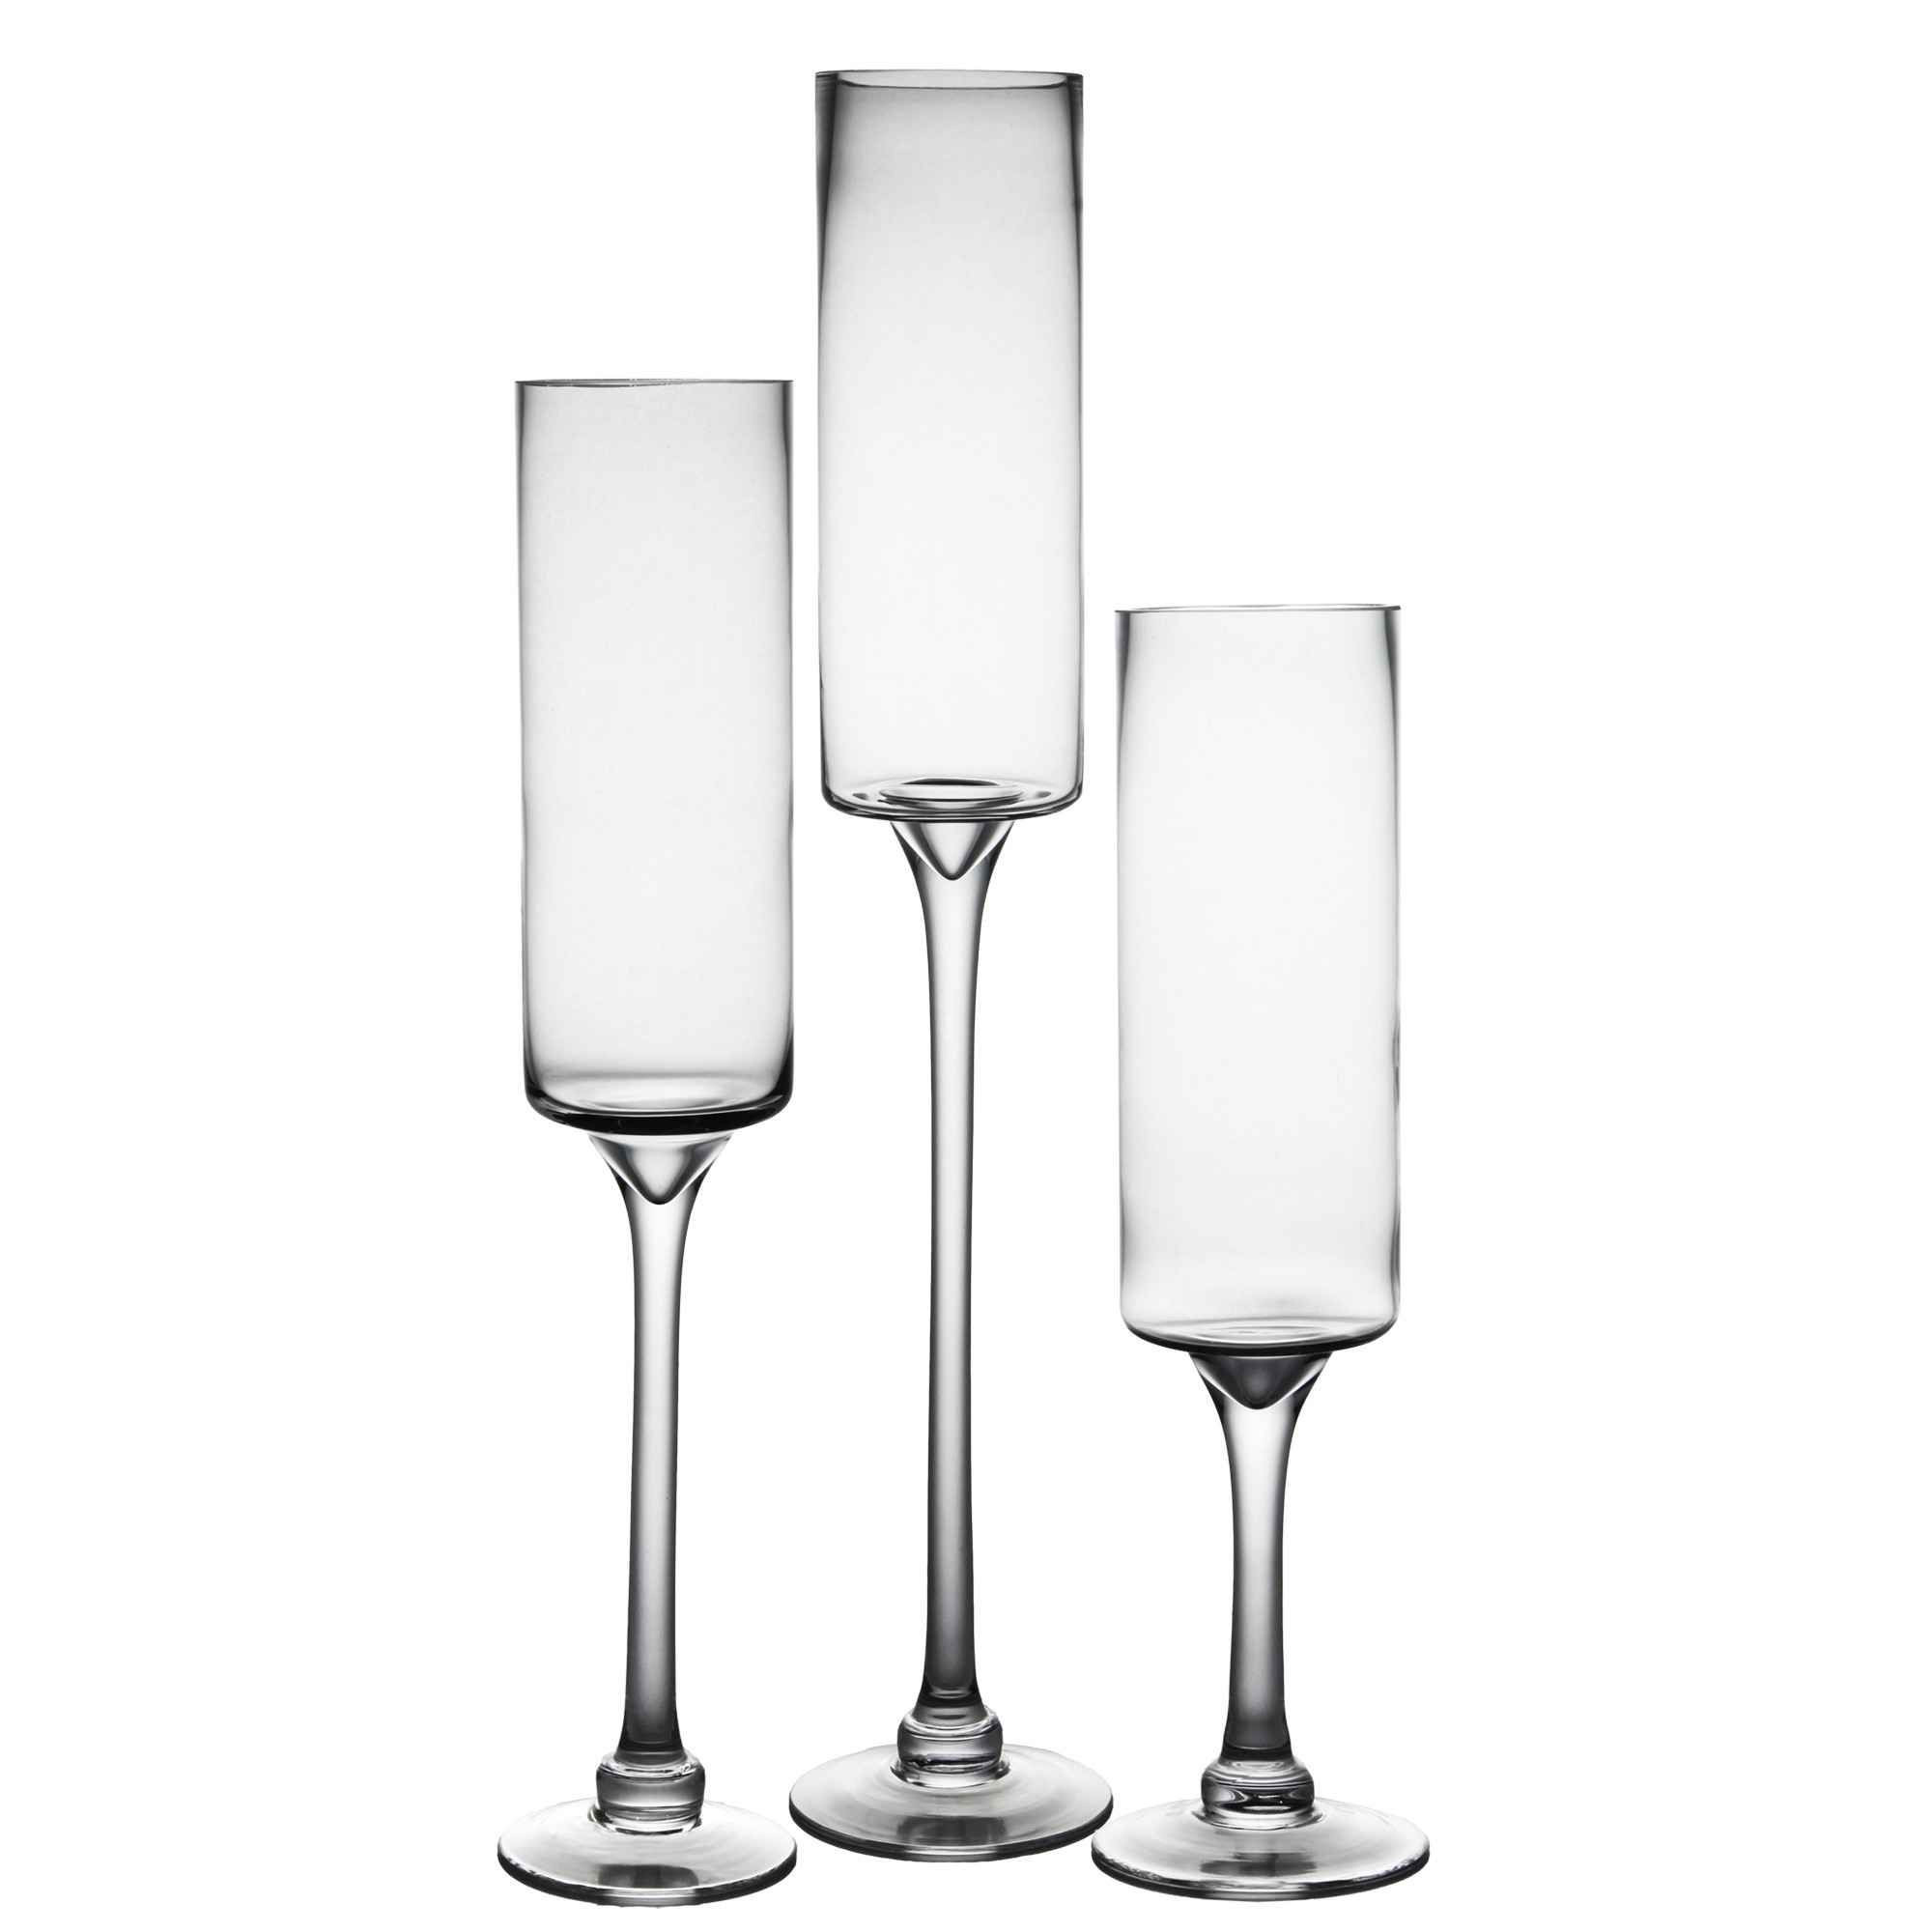 5 glass vase of big glass vase beautiful l h vases 12 inch hurricane clear glass for big glass vase beautiful l h vases 12 inch hurricane clear glass vase i 0d cheap in